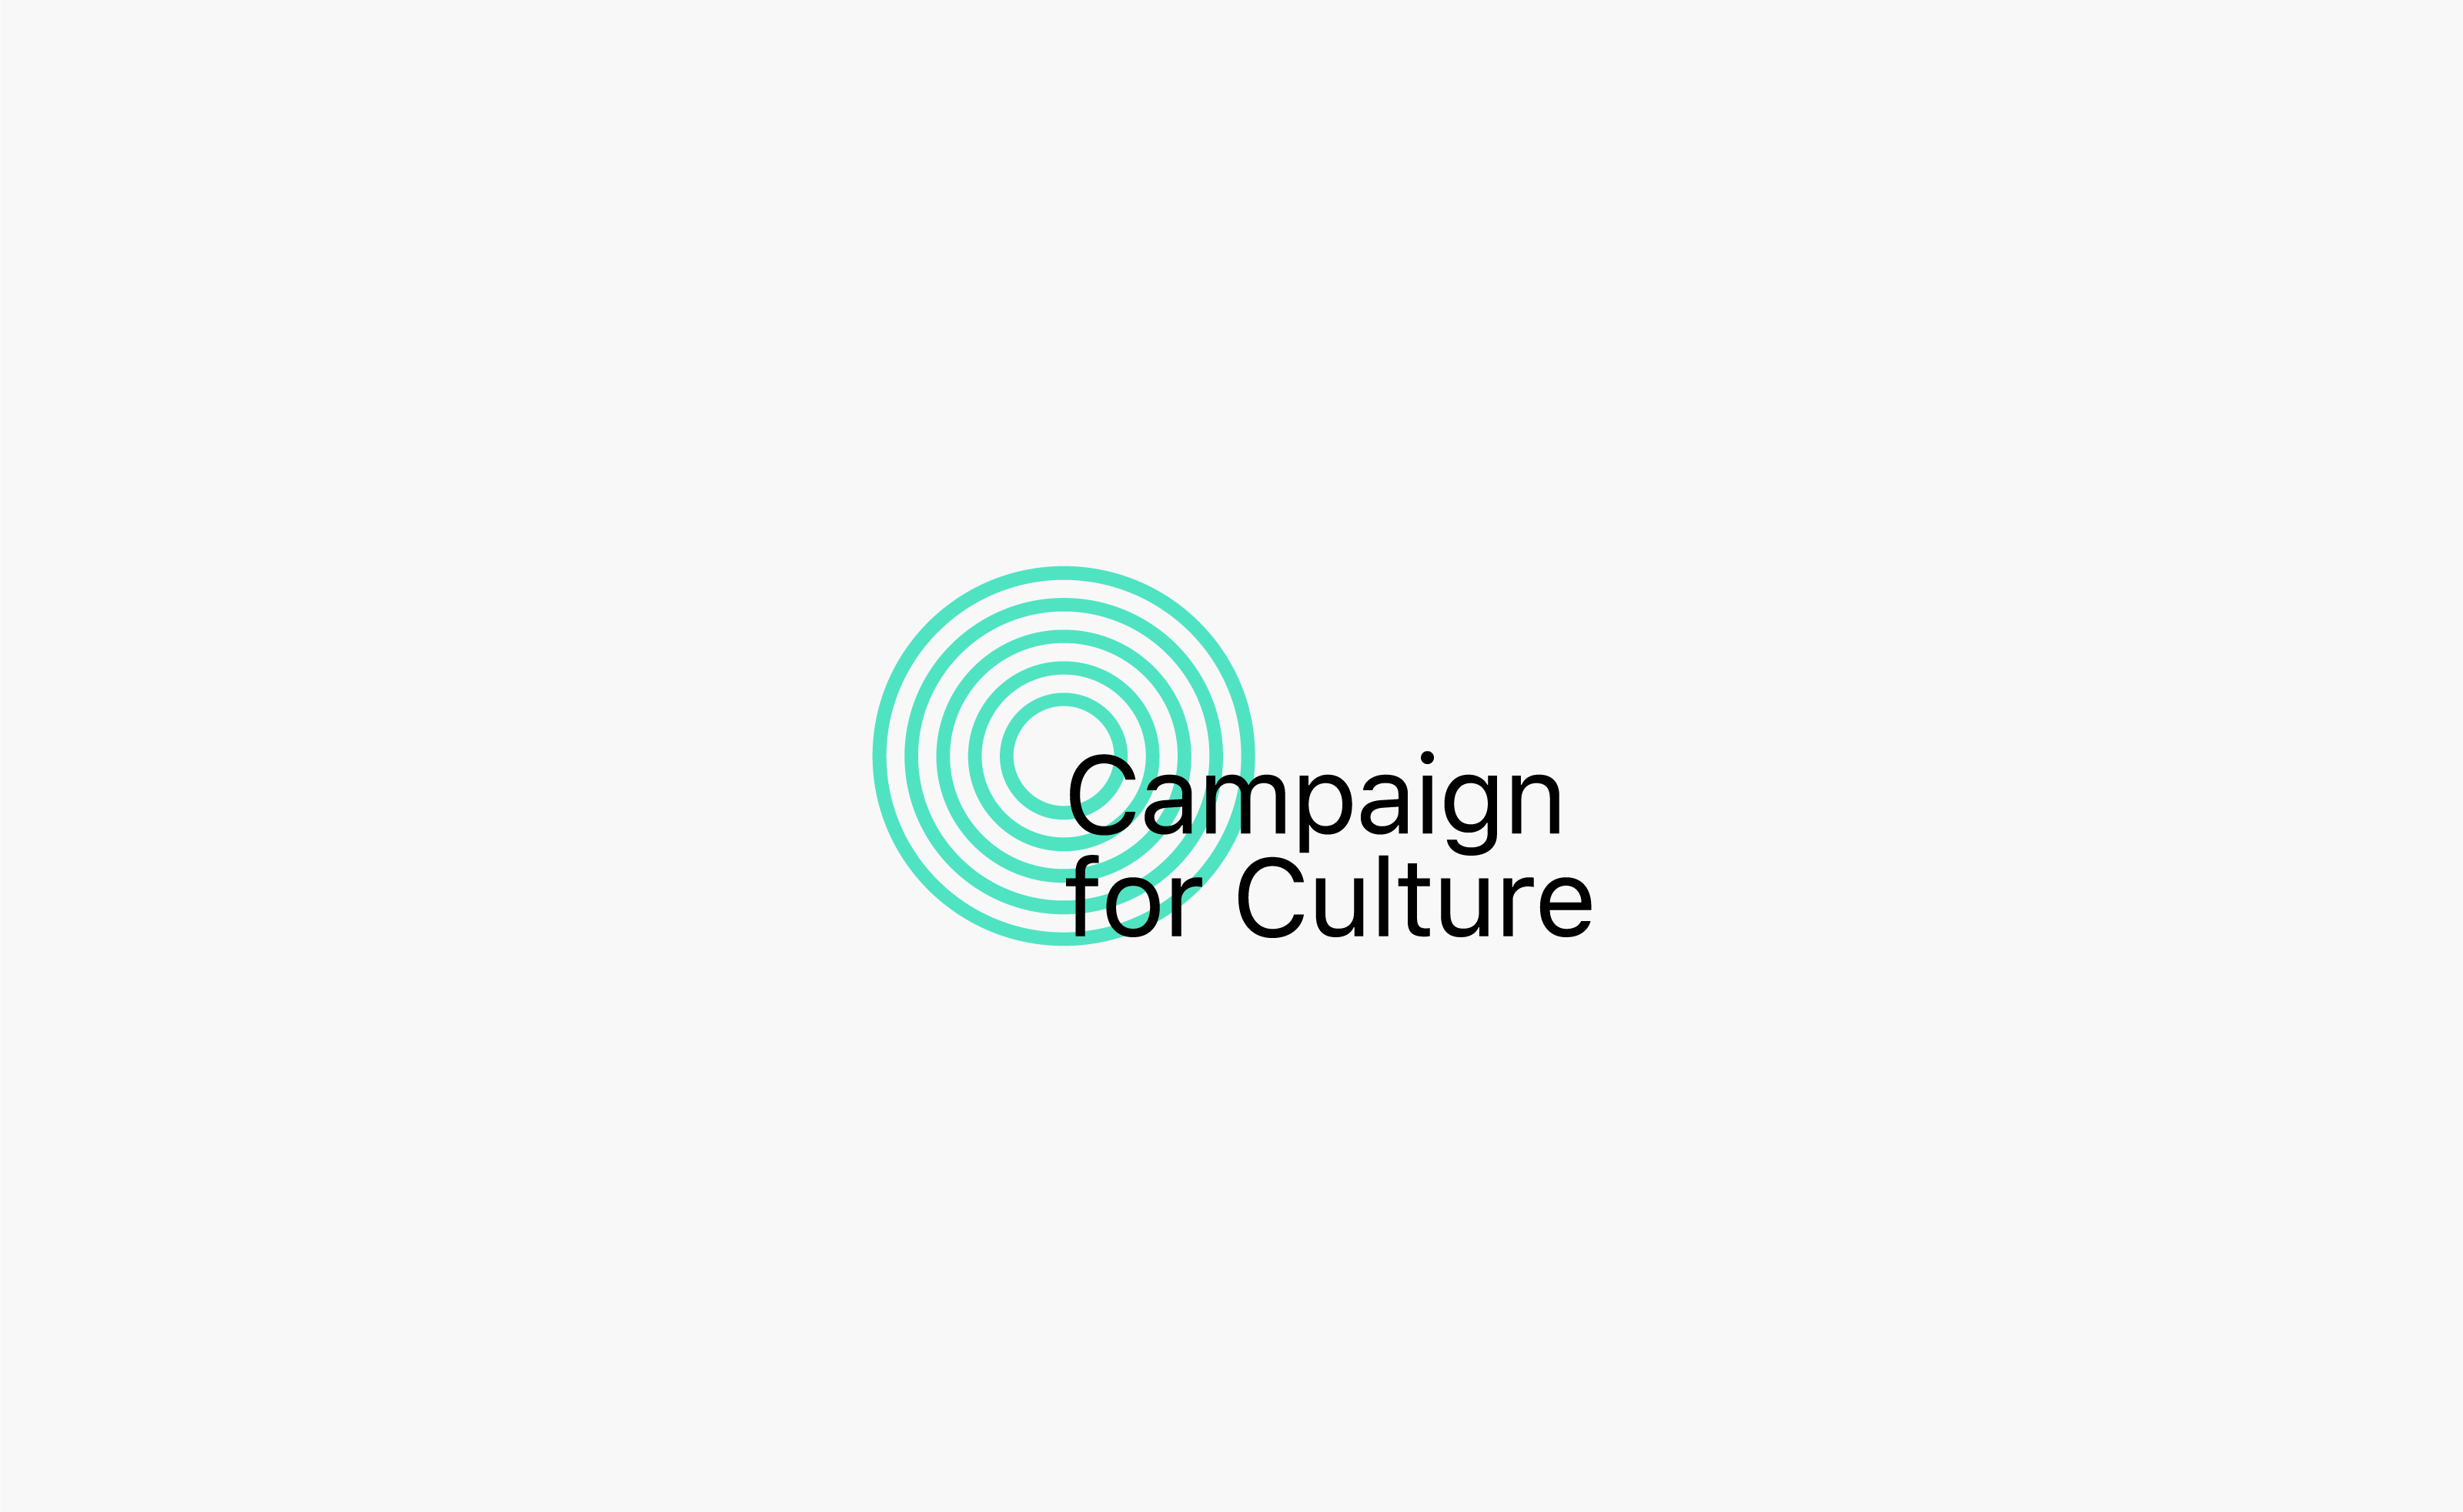 Campaign for Culture Updated Logo centered on a grey background — by Yagnyuk.